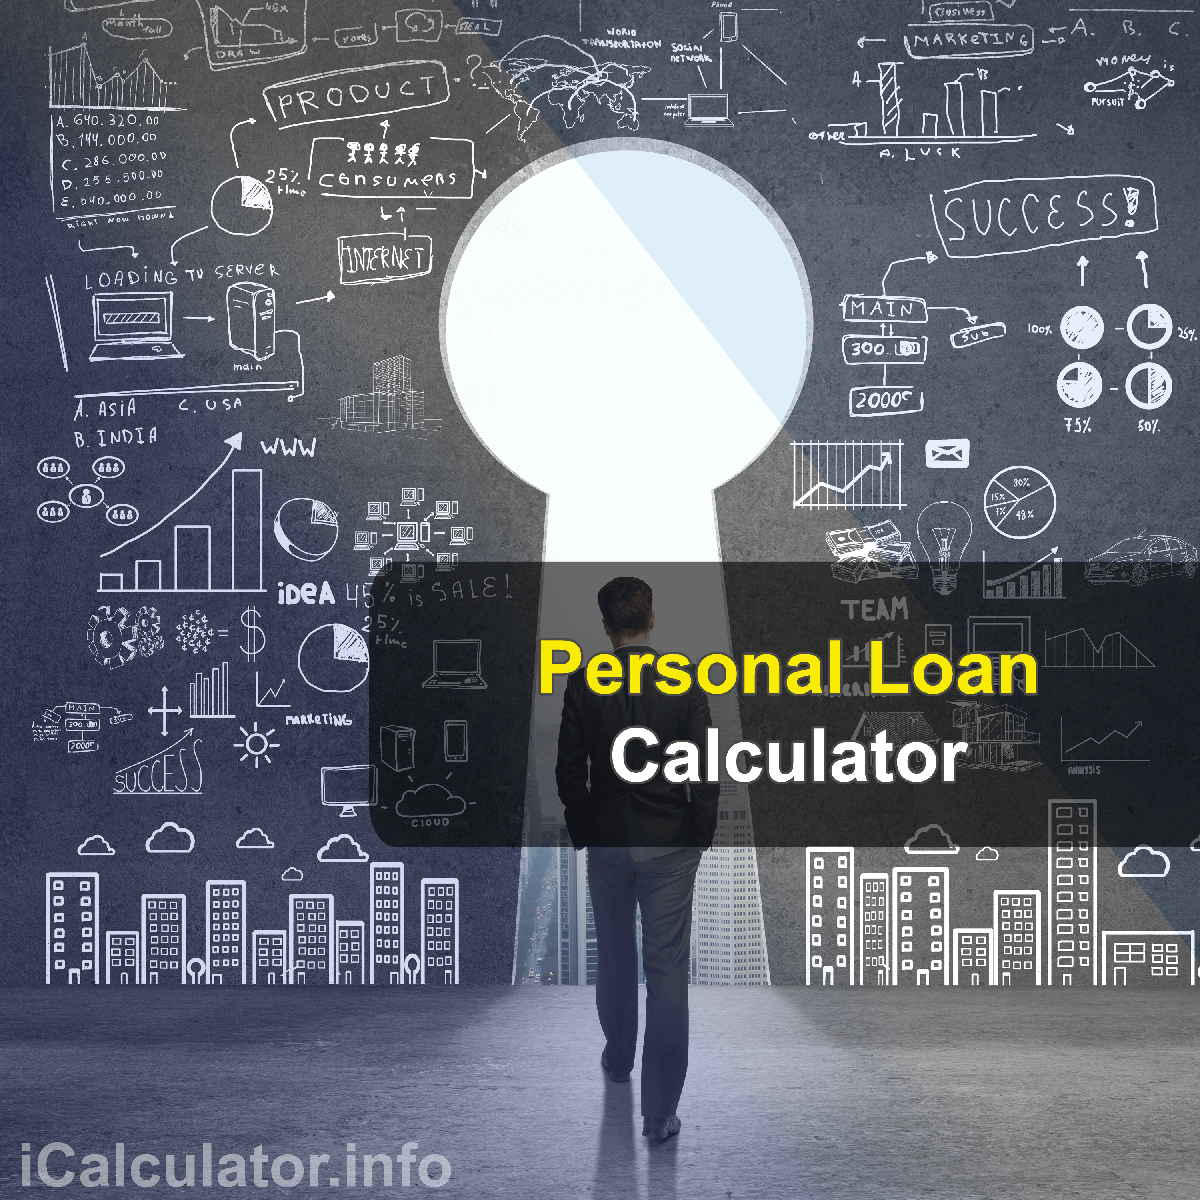 Personal Loan Calculator. This image shows the personal loan formula for the personal loan Calculator and associated free online calculators on iCalculator